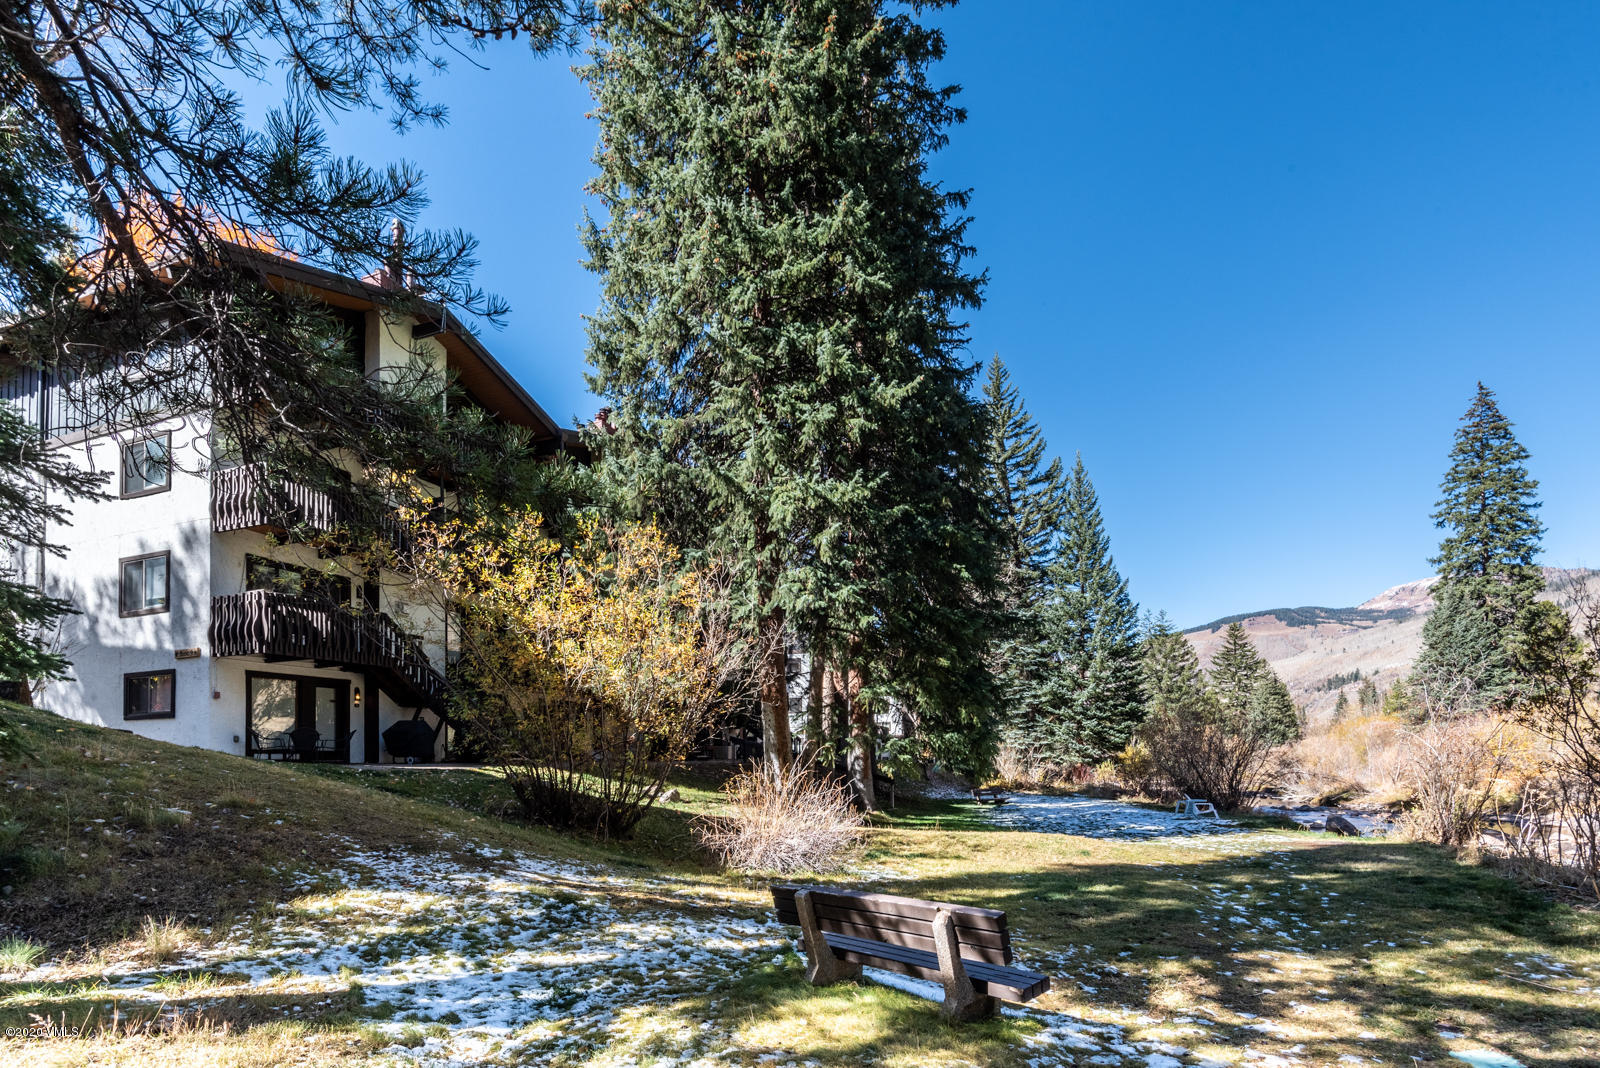 Enjoy your own private area of the Vail Racquet Club and relax on the patio or the expansive lawn directly on Gore Creek.  This furnished updated 1 bedroom is ready to move right in.  The floors are grey wood-grain laminate for easy care.  Gas heat and there is a $3,000 VRC fireplace reimbursement incentive for the buyer to choose the fireplace design.  The entrance is on the north/creekside so no climbing stairs.  Ski storage closet at the condo and VRC bike storage is available.  Owners can have pets and rent their condo short term through the on site management.  Close to a heated outdoor Olympic Swimming Pool, Hot Tubs, Fitness Facility, Tennis Courts, Restaurant, Bighorn Dog Park and Free Bus to Vail Village for Skiing, Boutique Shopping, Fine Restaurants and Live Entertainment.   Your Vail mountain condo on Gore Creek is ready for you!